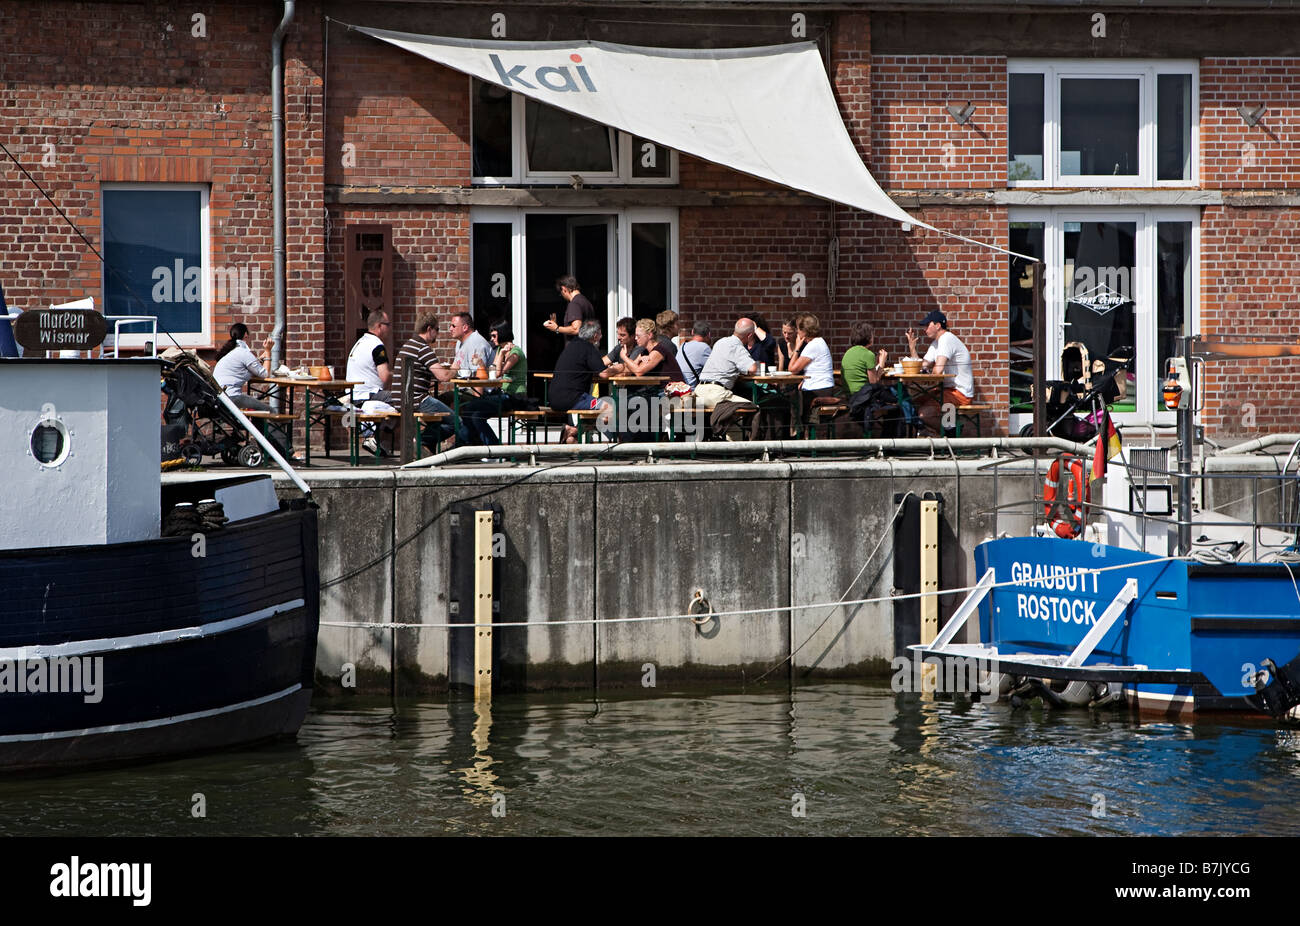 People eating outdoors at cafe on wharf Wismar harbour Germany - Stock Image